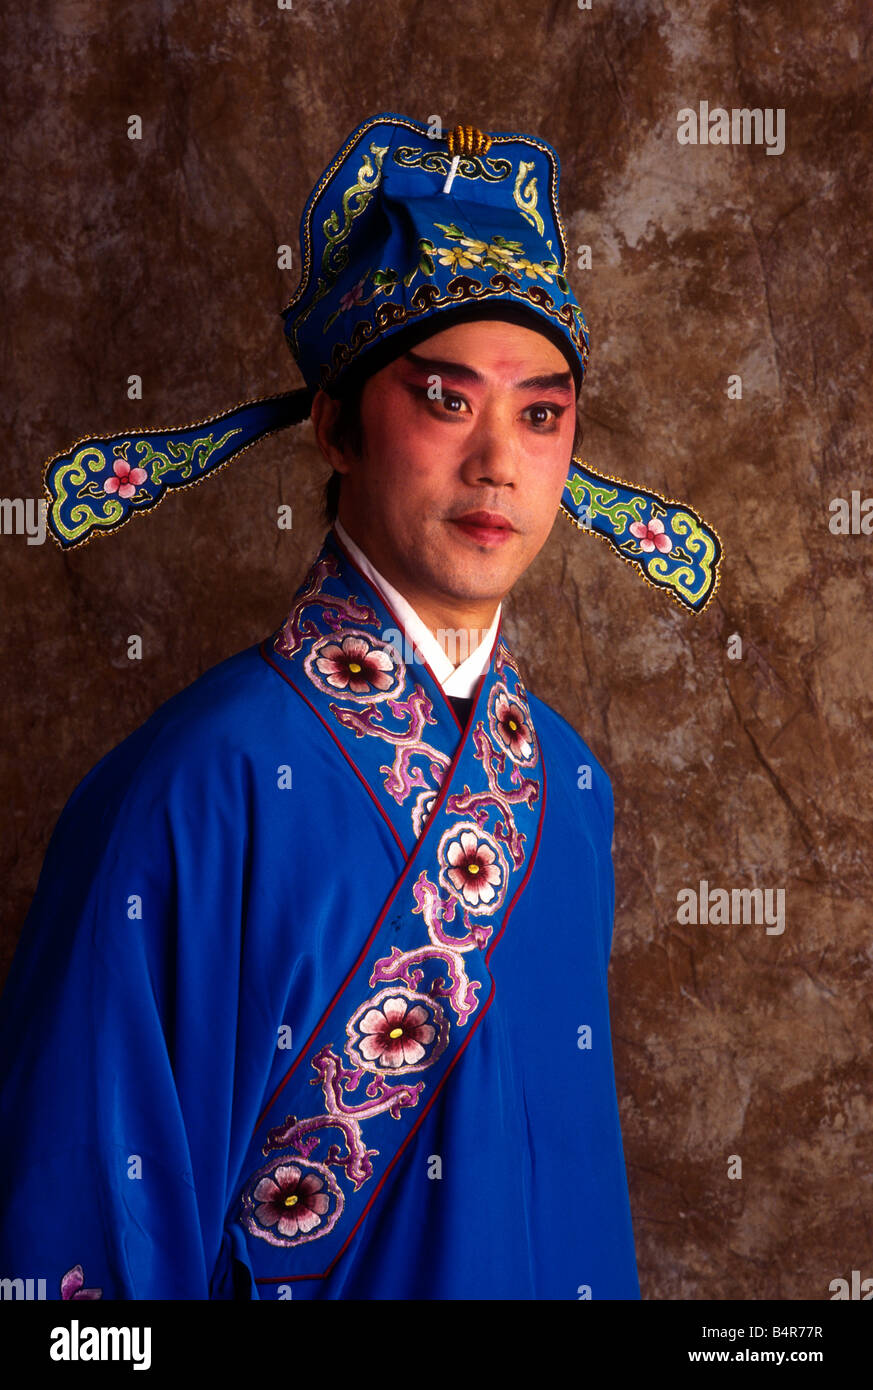 chinese opera man performer traditional clothing stage make up - Stock Image